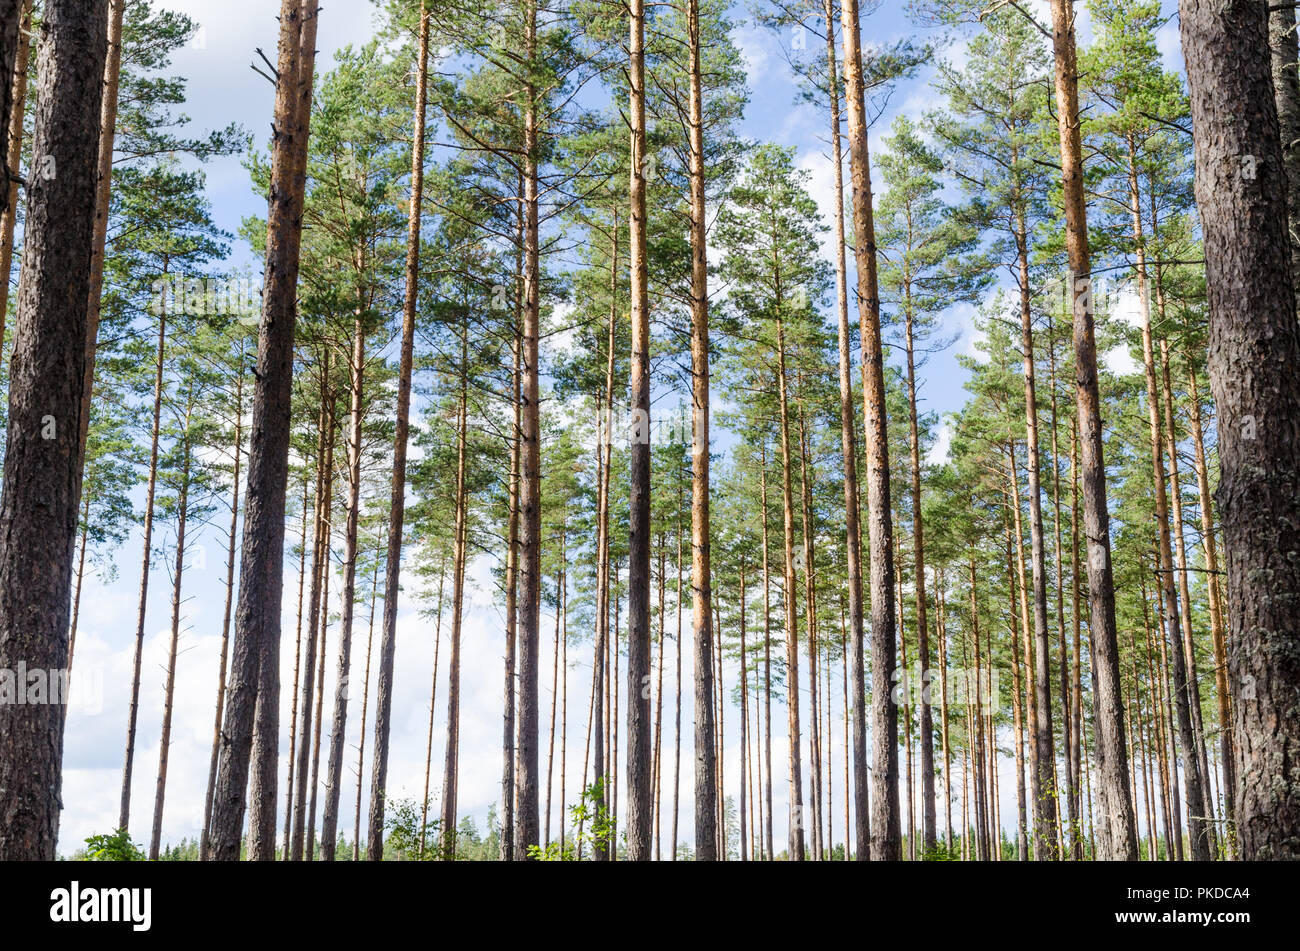 Beautiful Forest Background Of A Bright Woodland With Tall Pine